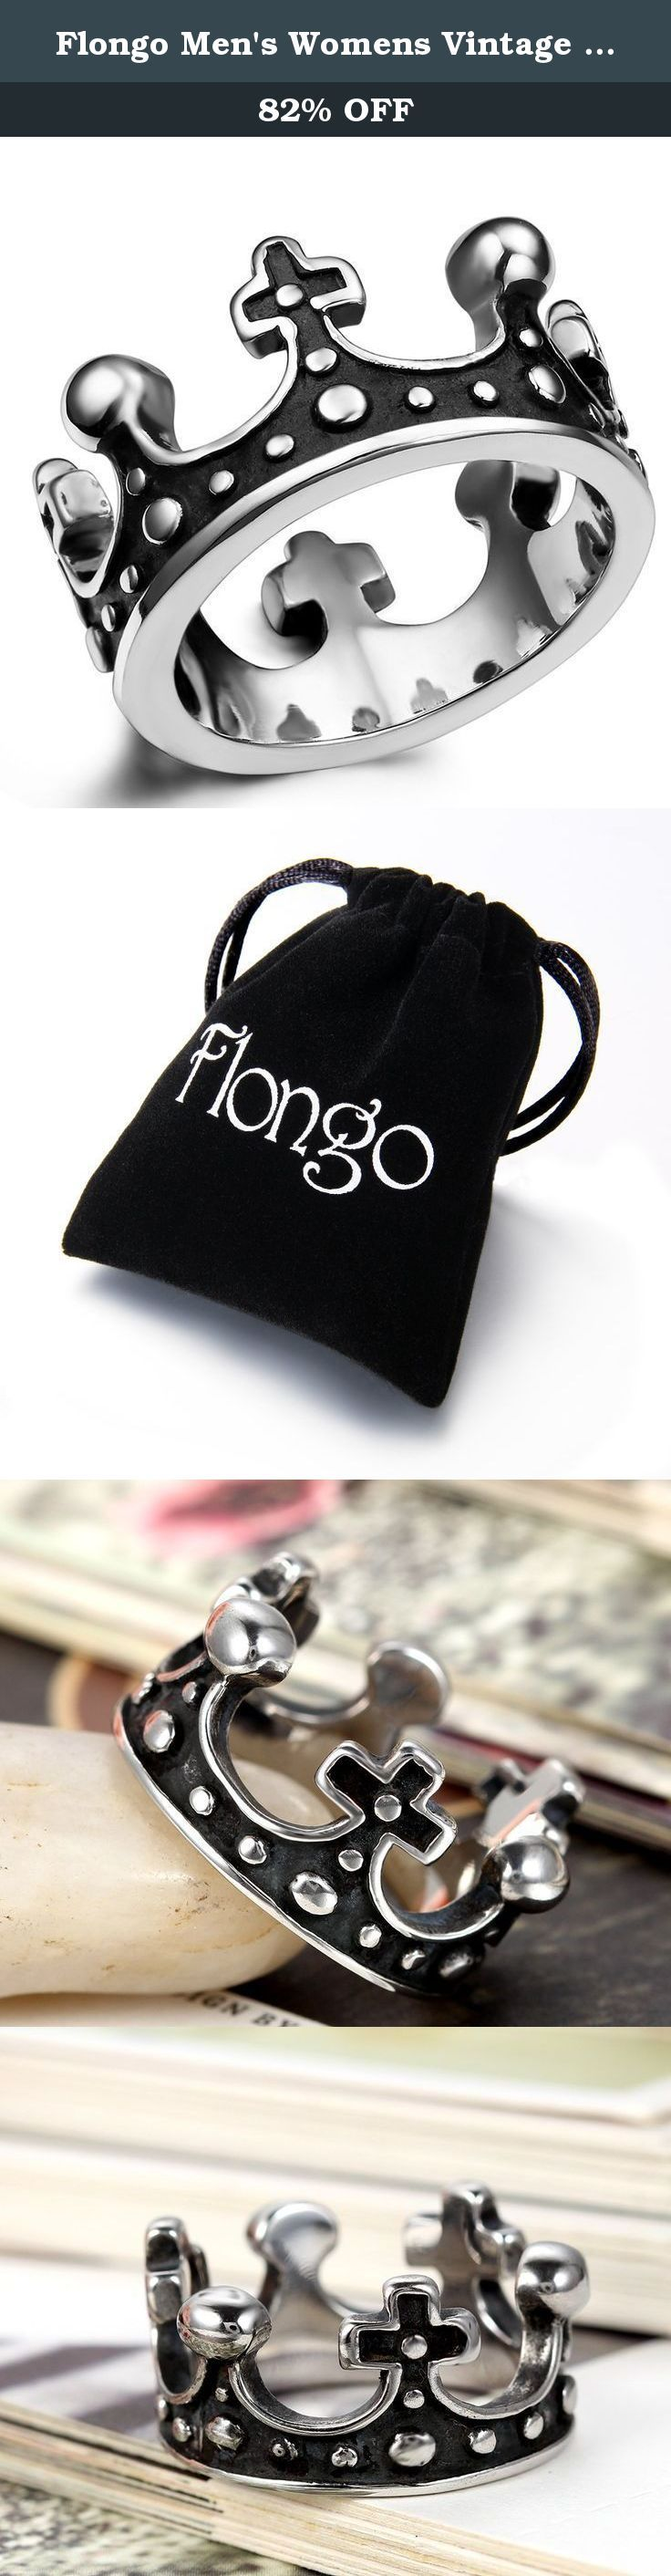 Flongo Men's Womens Vintage Stainless Steel Ring Black Silver Queen King Crown Gothic Band, Size 10. Flongo Men's Womens Vintage Stainless Steel Ring Black Silver Queen King Crown Gothic Band Mens Womens 22mm: 6, 7, 8, 9, 10, 11, 12 Material: Stainless Steel Package Included: 1 x Flongo Stainless Steel Ring 1 x Gift Bag Why choose Stainless Steel Jewelry? Stainless steel does not readily corrode, rust or stain with water as ordinary metal does. Its resistance to corrosion and staining…